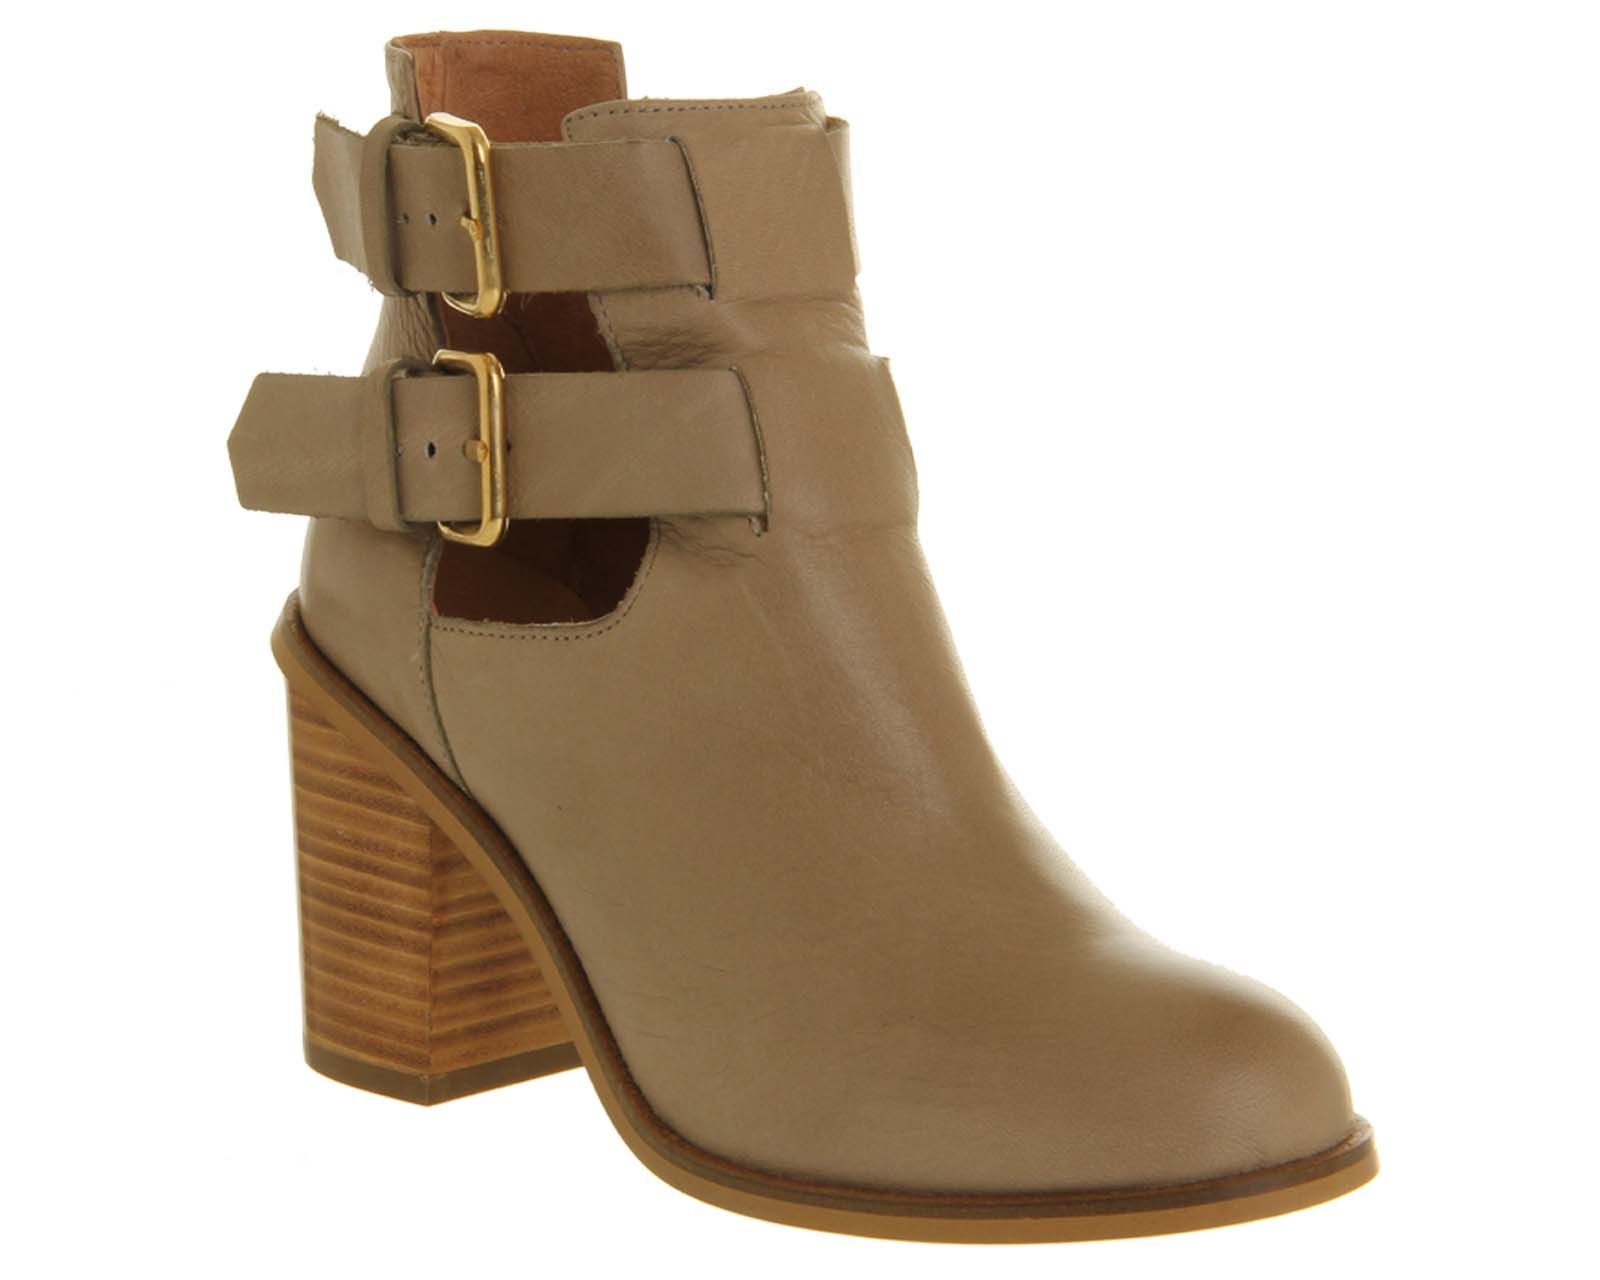 Office Understanding 2 Cut Out Metal Heel Taupe Leather Ankle Boots